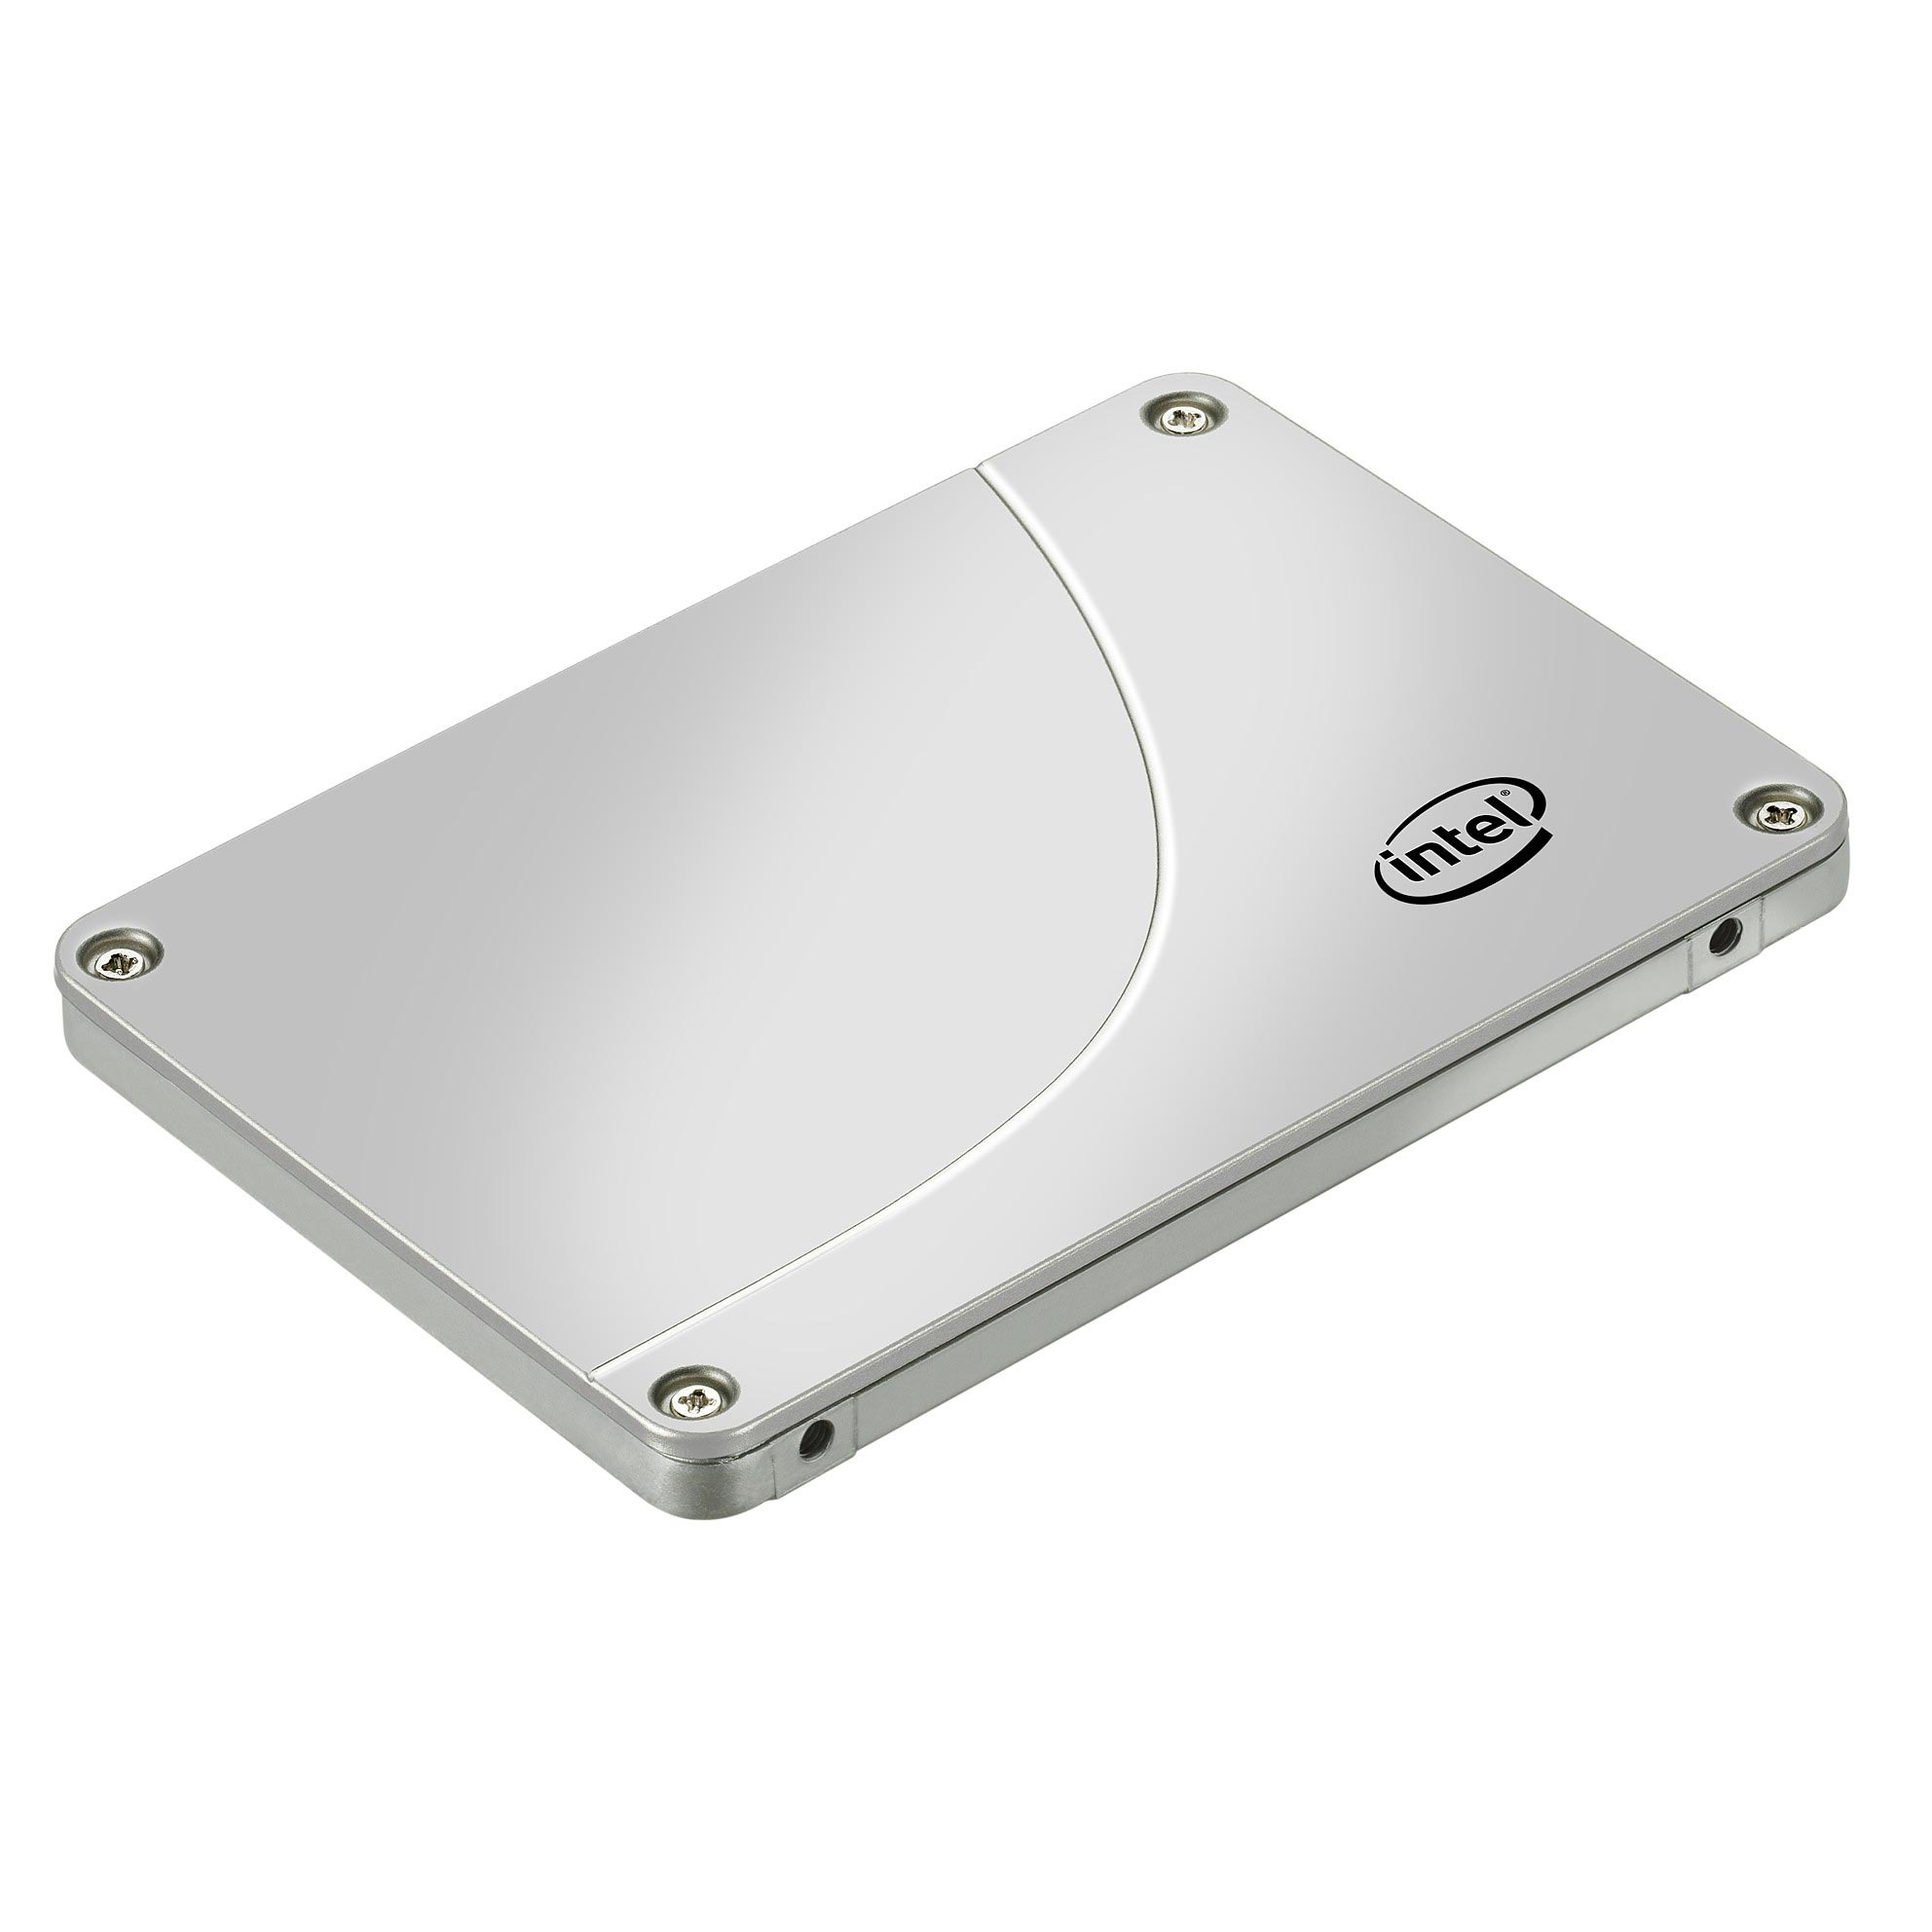 "Disque SSD Intel Solid-State Drive 320 Series 40 Go SATA II 3Gb/s OEM SSD 40 Go 2.5"" 9.5 mm MLC Serial ATA II (Postville Refresh) - OEM"